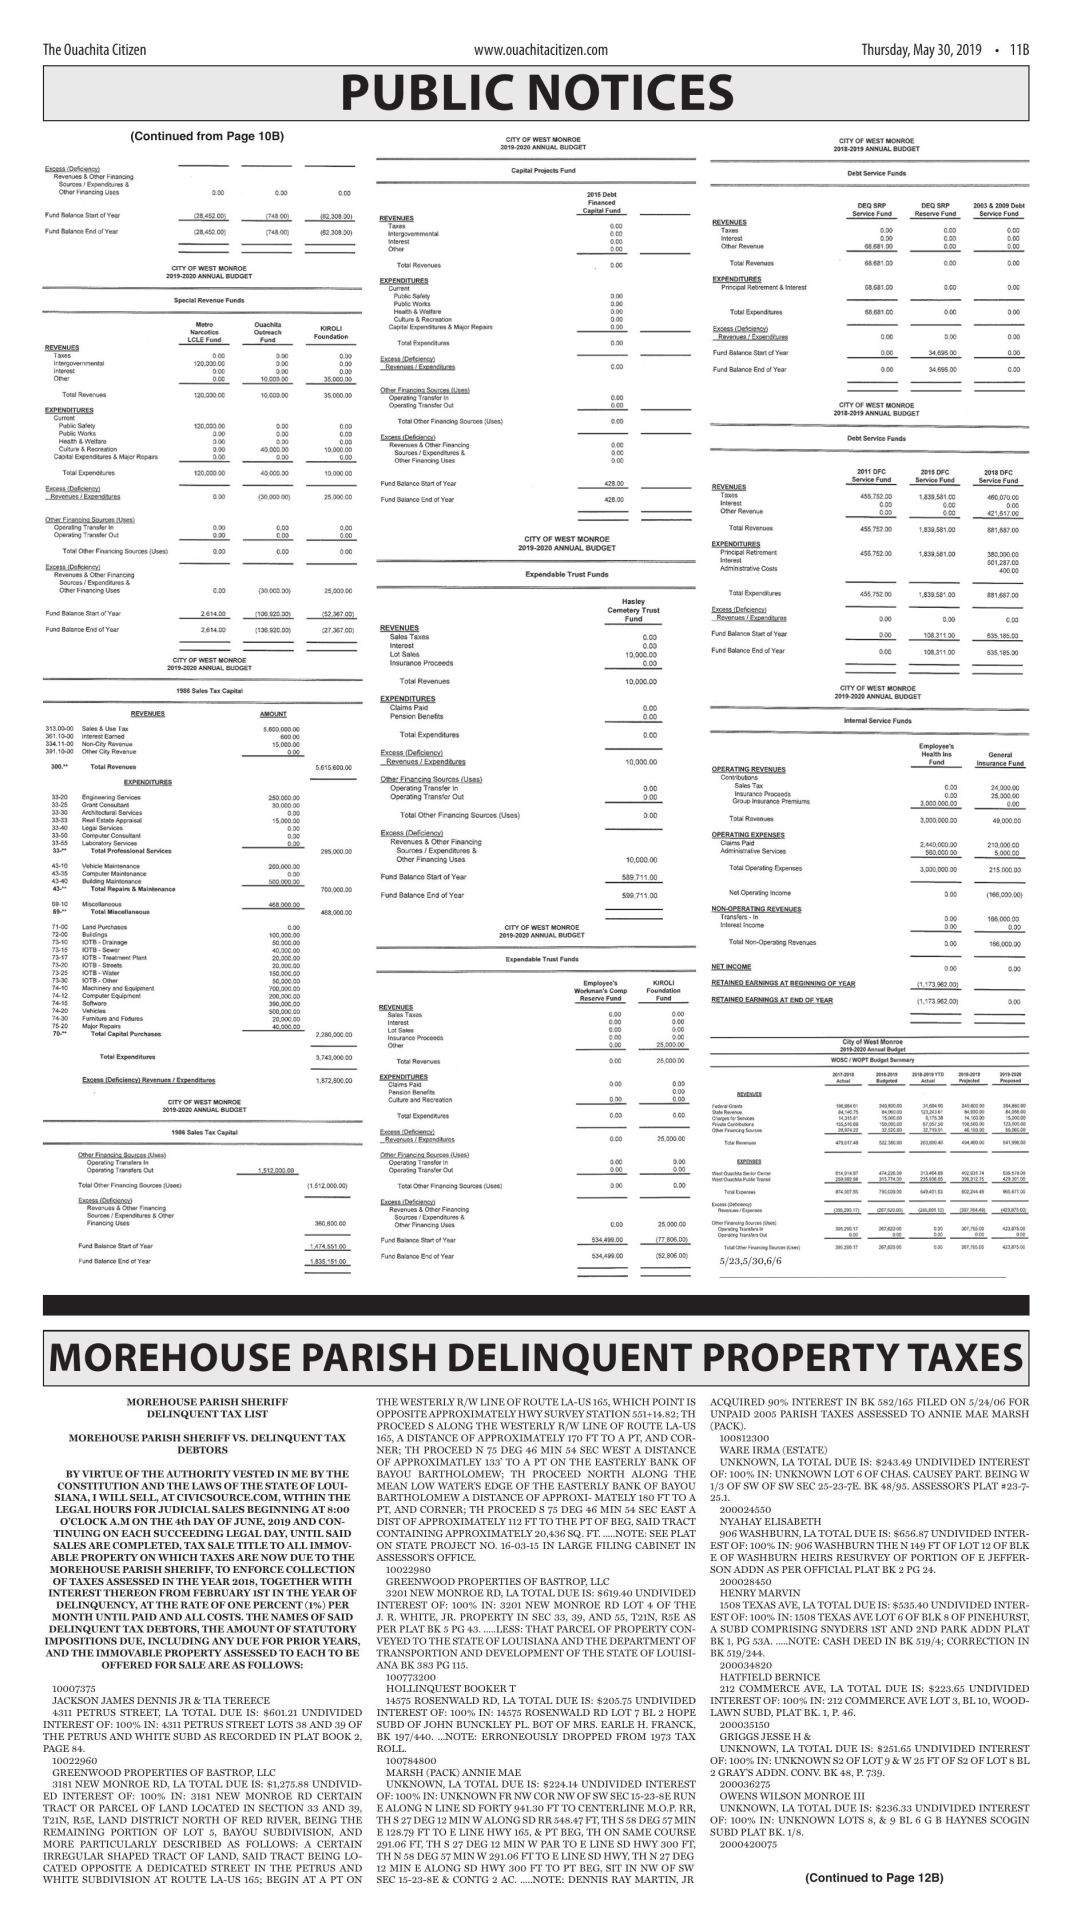 May 30, 2019 Morehouse Parish Delinquent Property Taxes, click to download pages